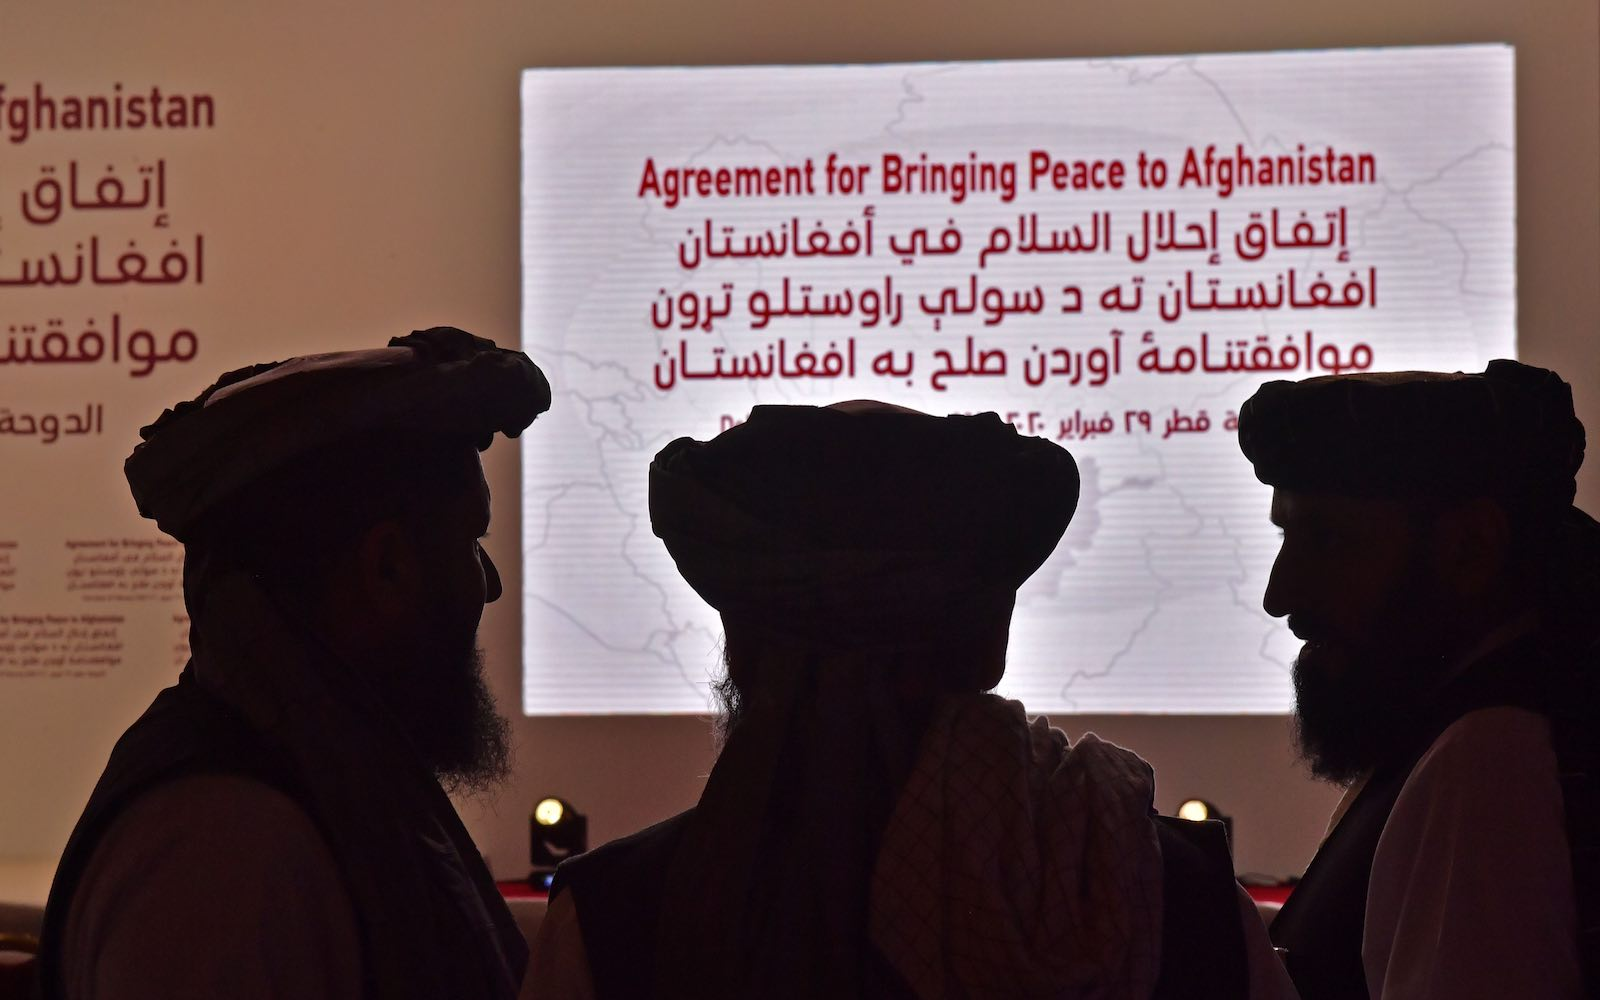 Members of the Taliban delegation attend the signing of a peace deal with the US, on 29 February 2020 in Doha, Qatar (Giuseppe Cacace/AFP via Getty Images)